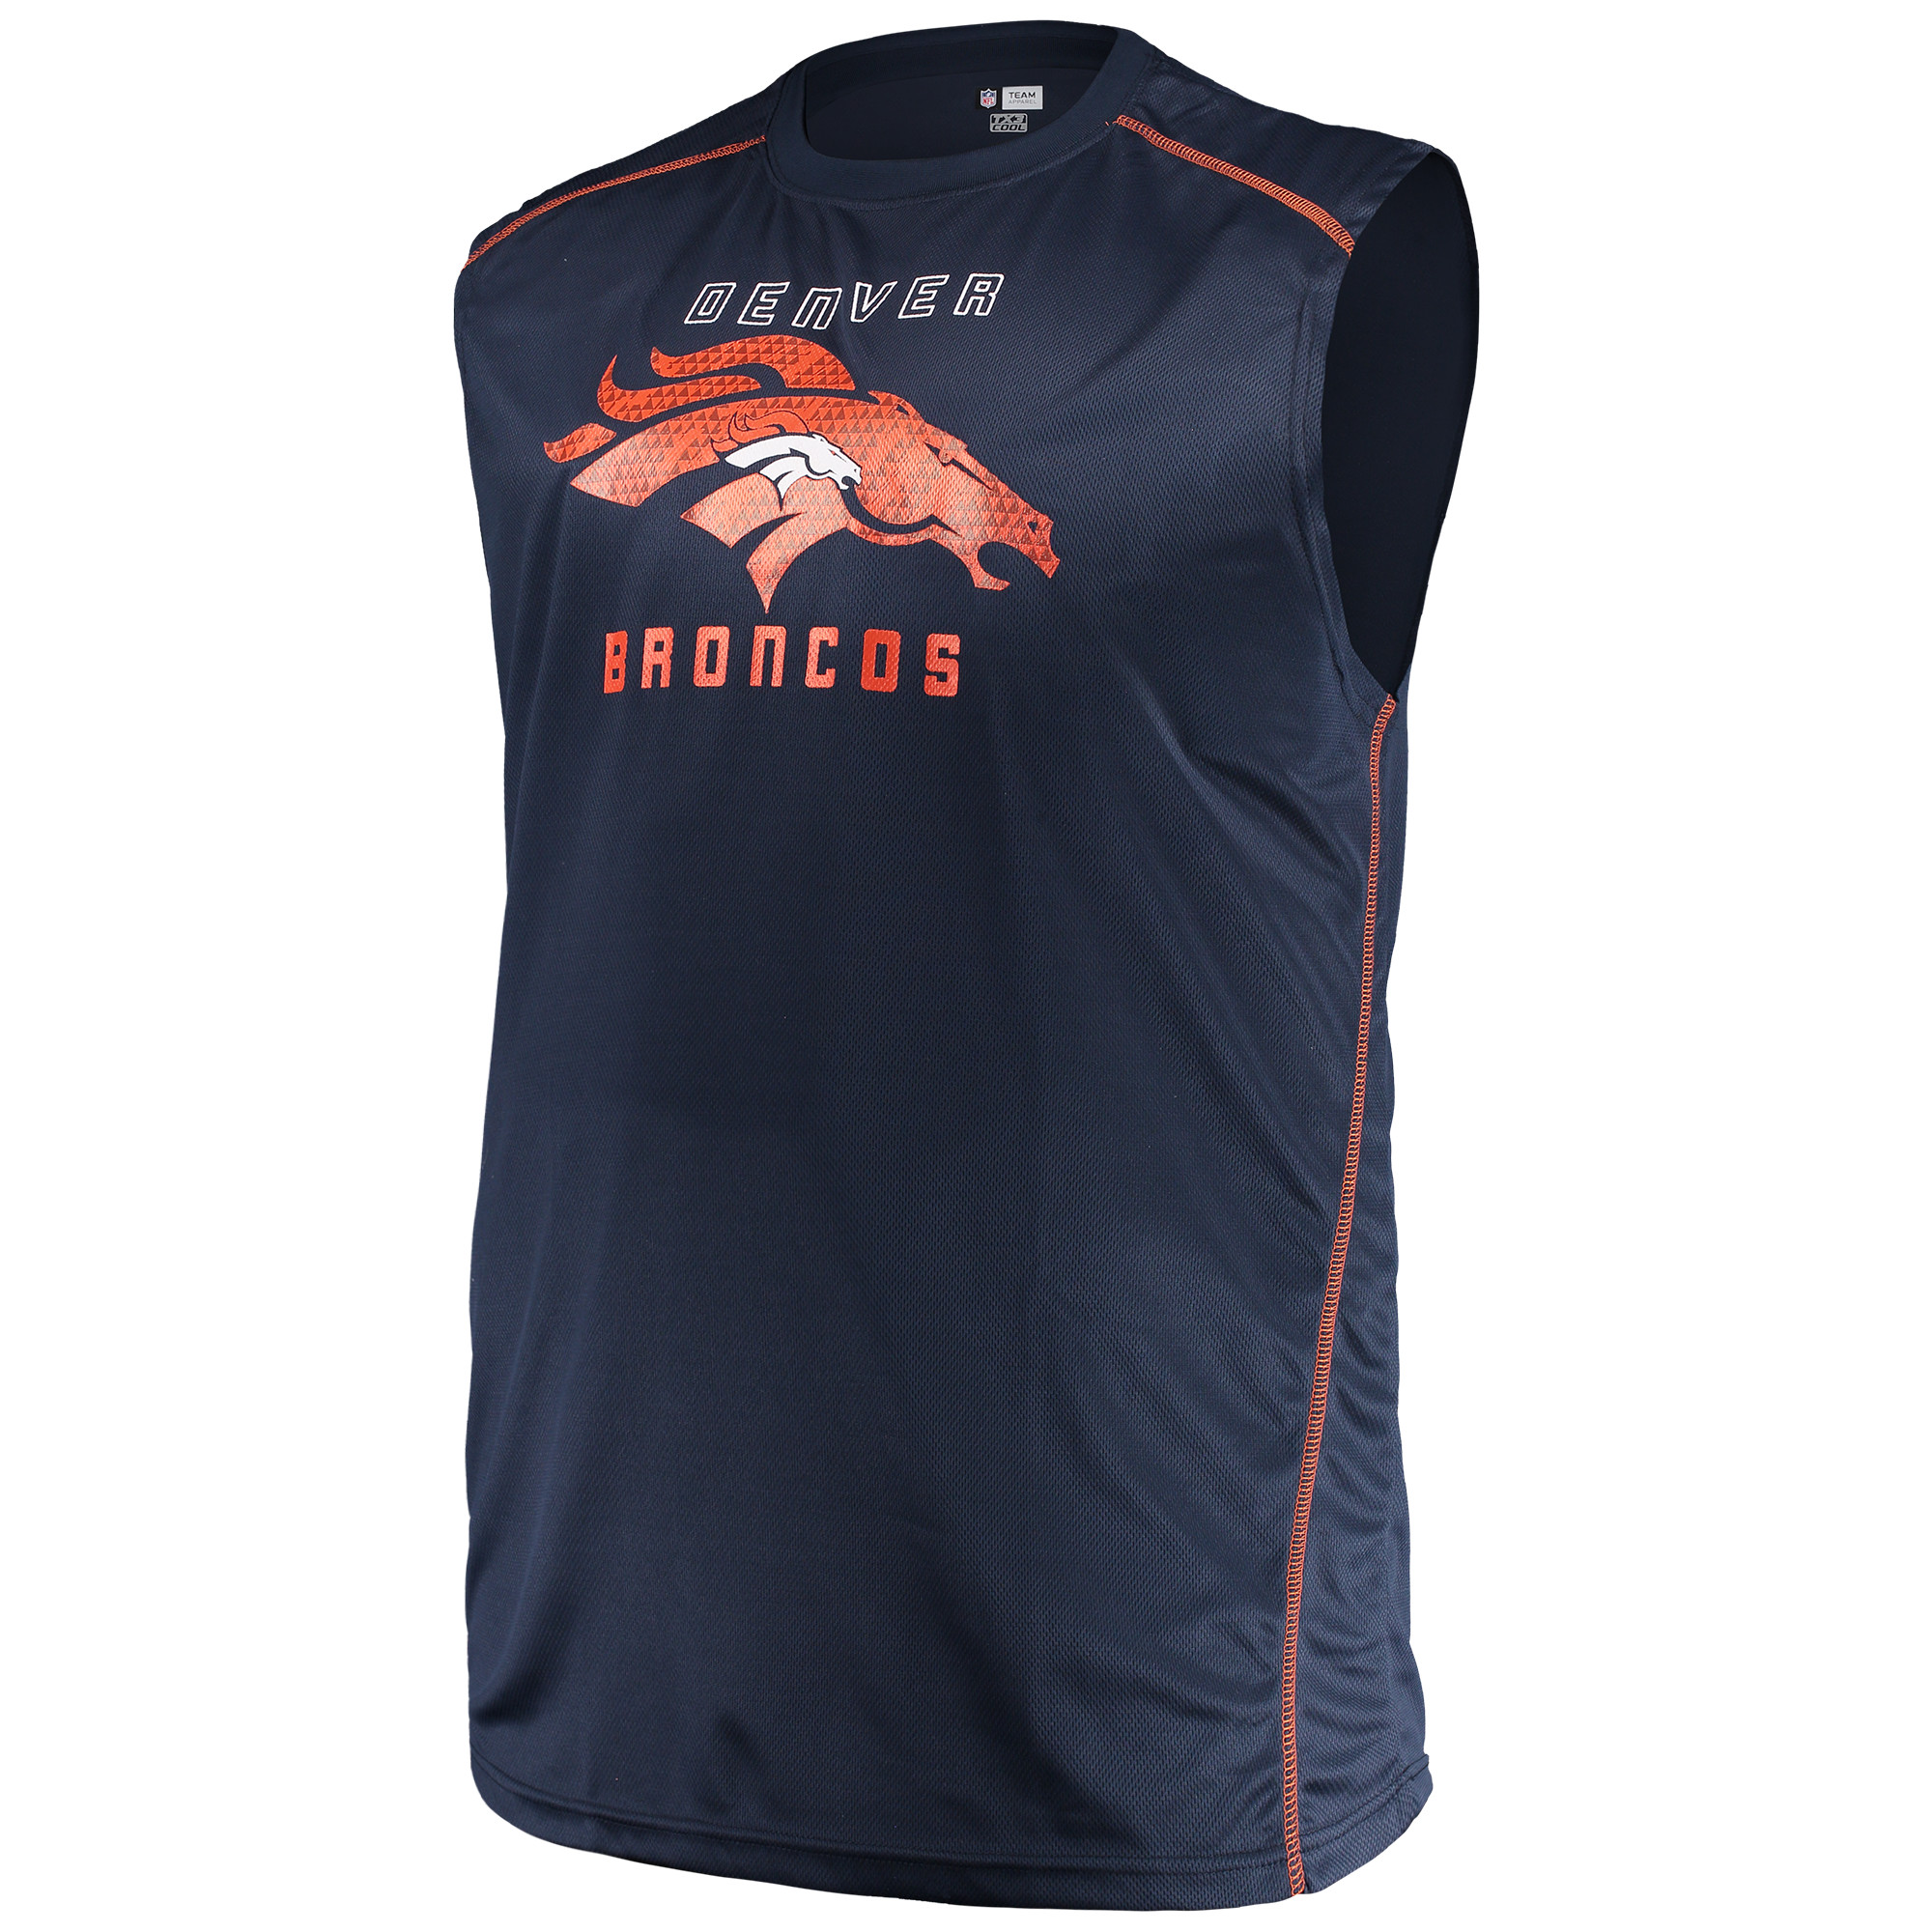 Men's Majestic Navy Denver Broncos Big & Tall Endurance Test Muscle Tank Top